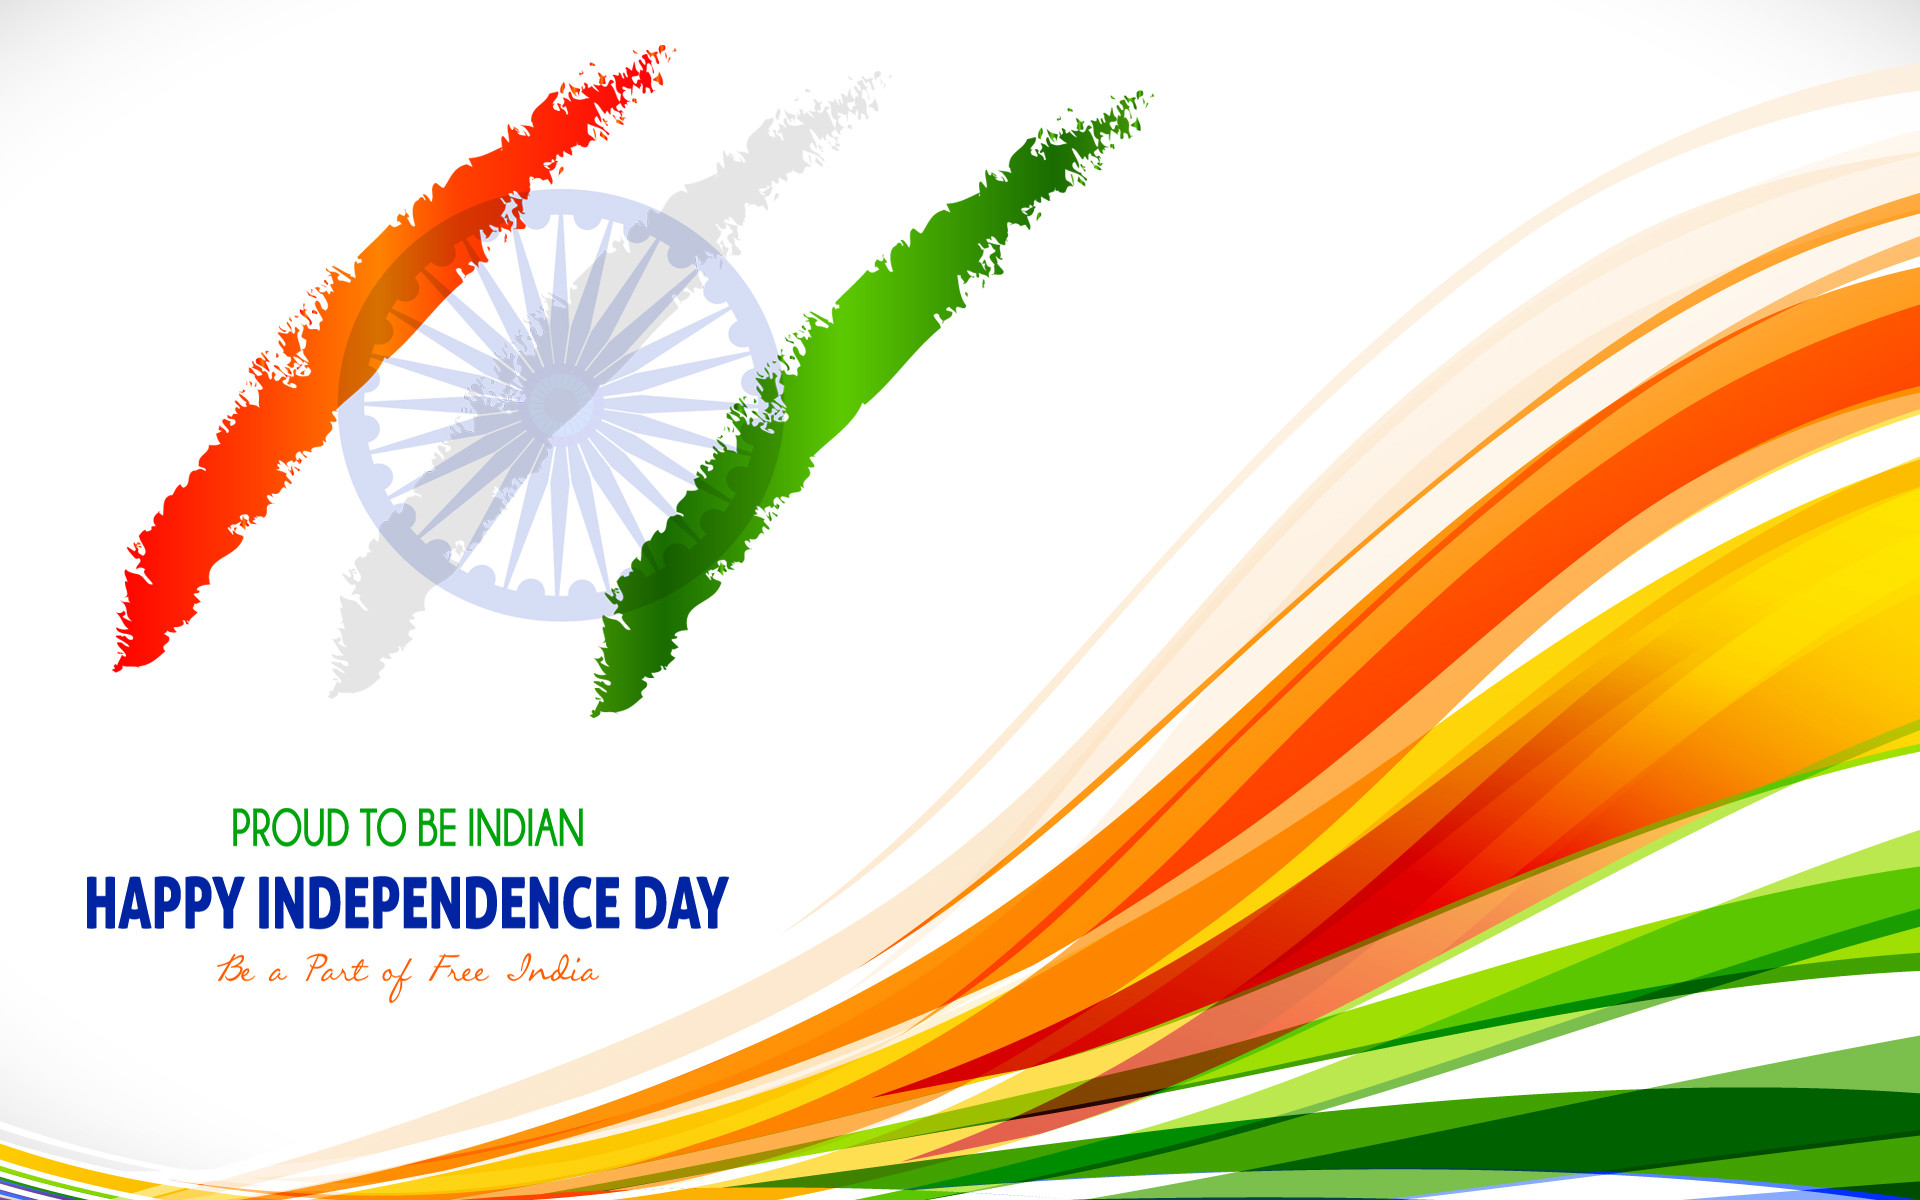 1920x1200 August Indian Independence Day Wallpaper with Tricolor India Flag - HD  Wallpapers